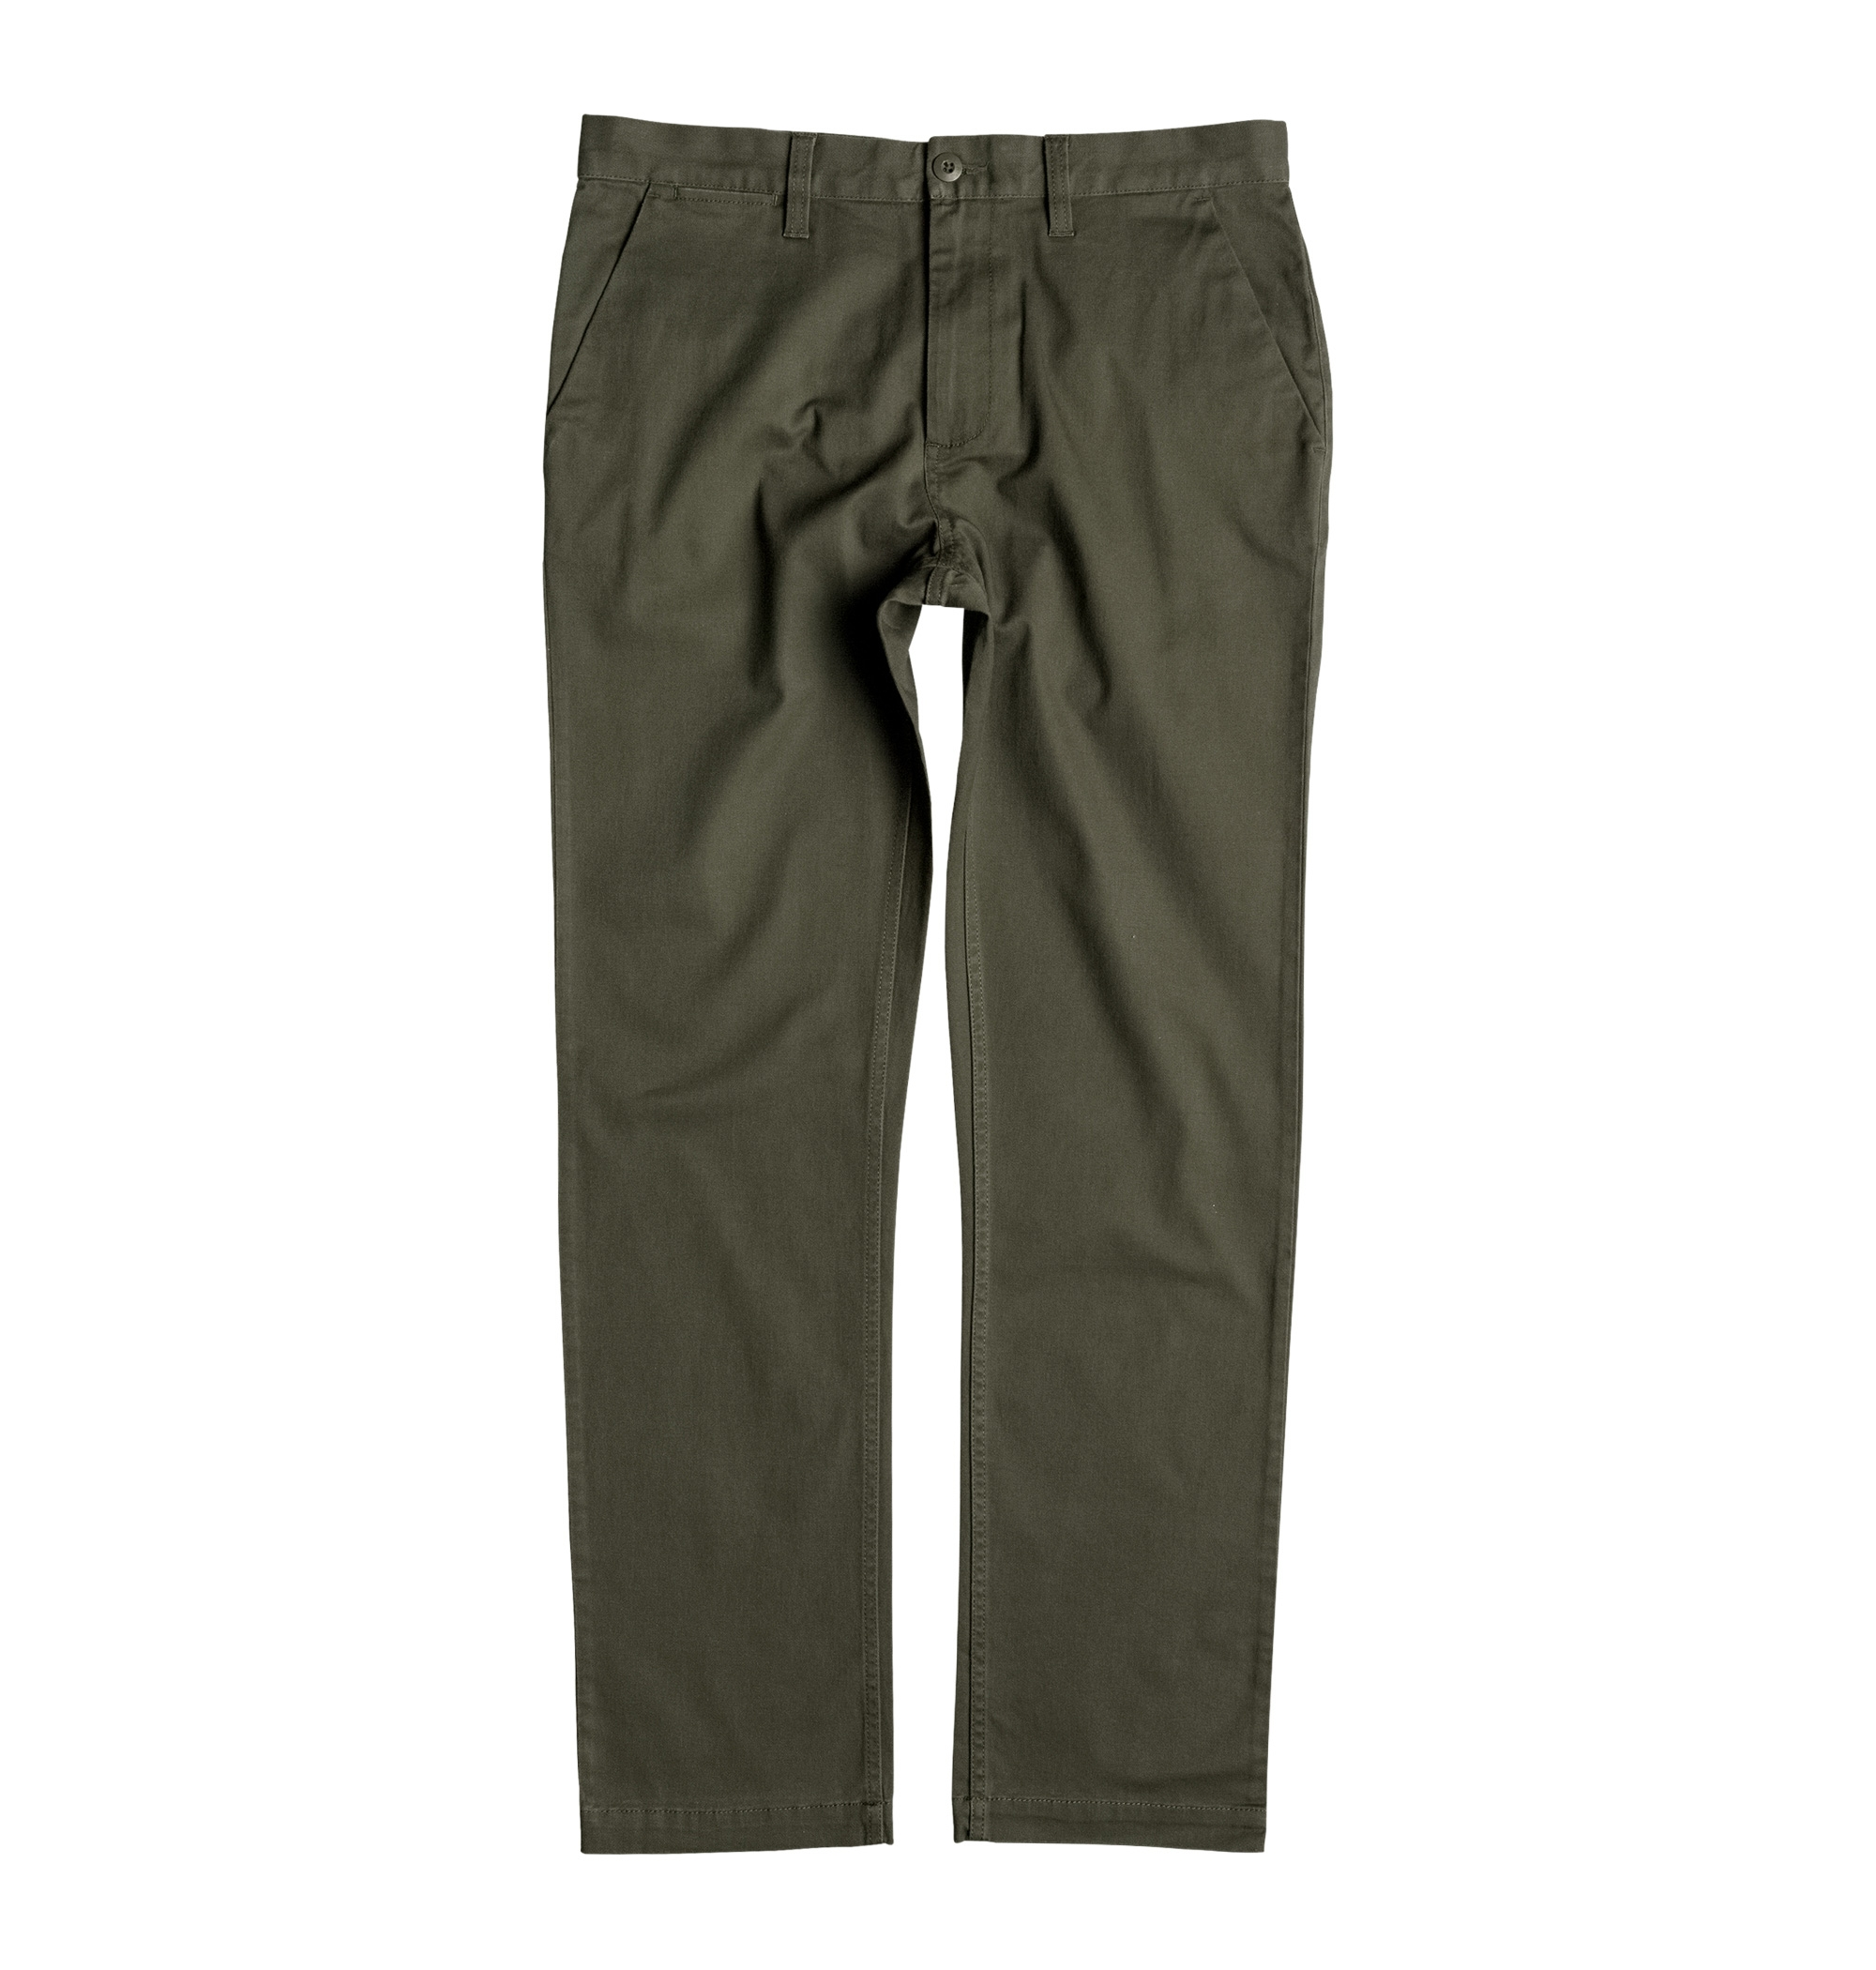 Coupe straight pantalon homme